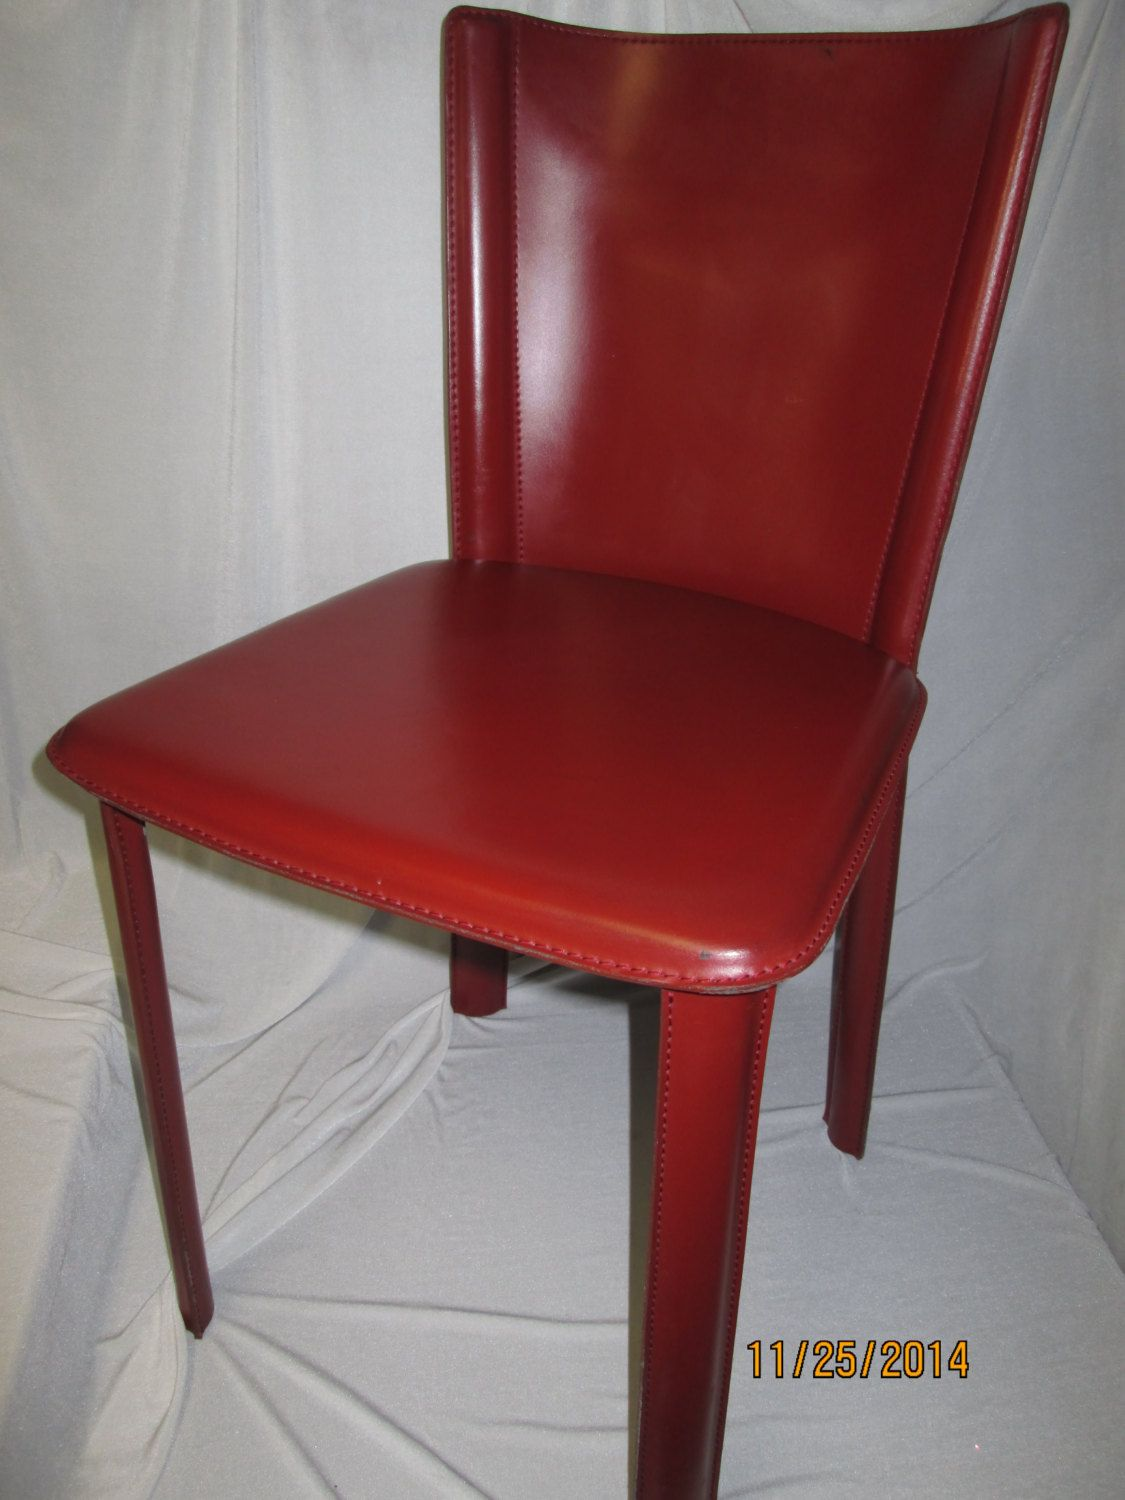 Pin On Italian Leather Chairs